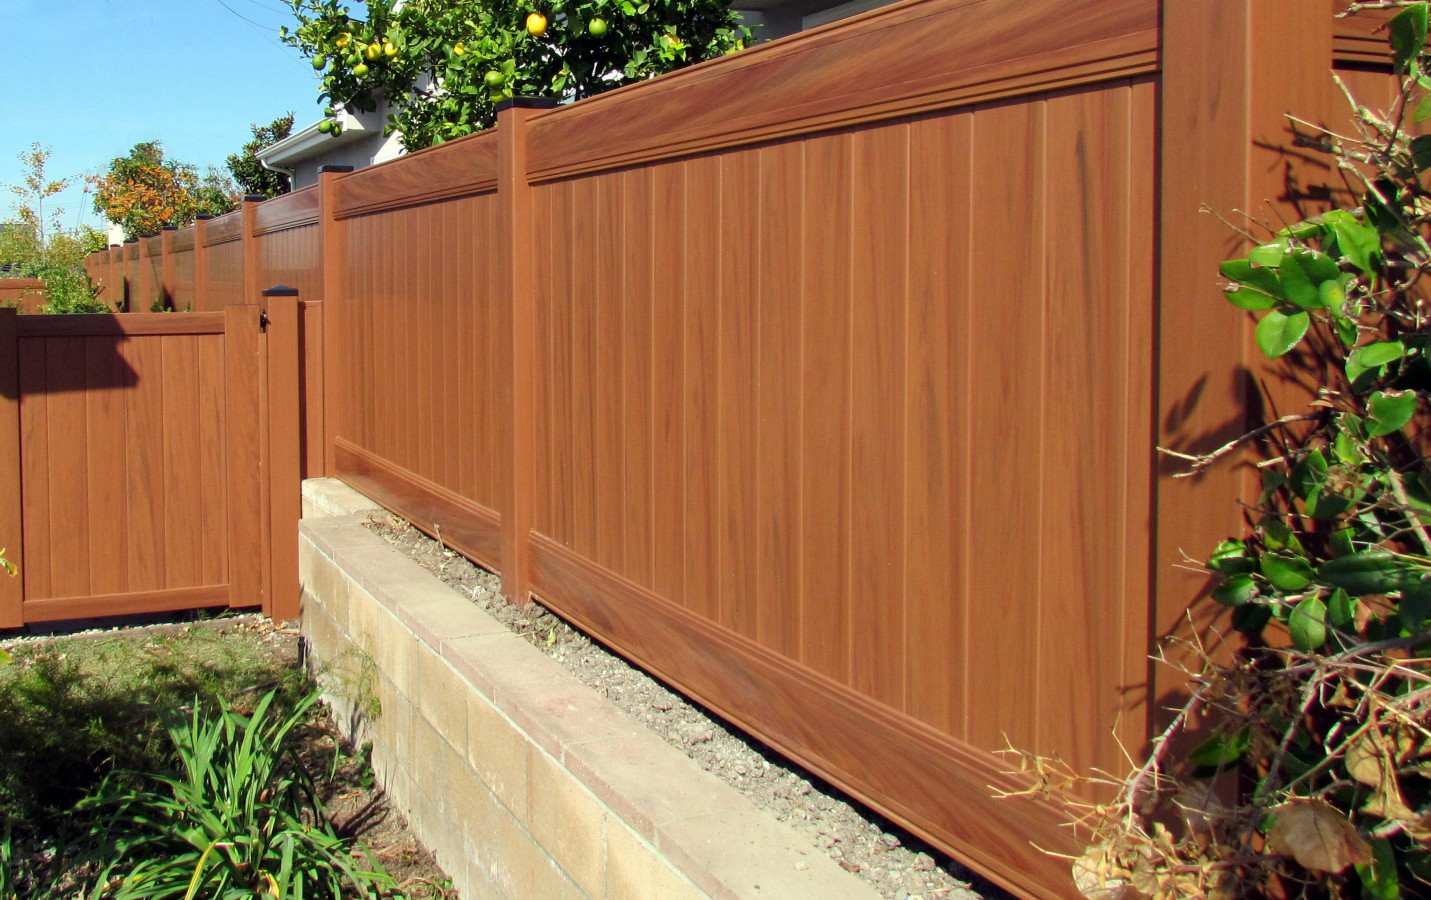 vinyl fencing. We Offer A Limited Lifetime Warranty On Our Vinyl Fencing Products For All The Services And Products, As Well One Year Workmaship You Receive.